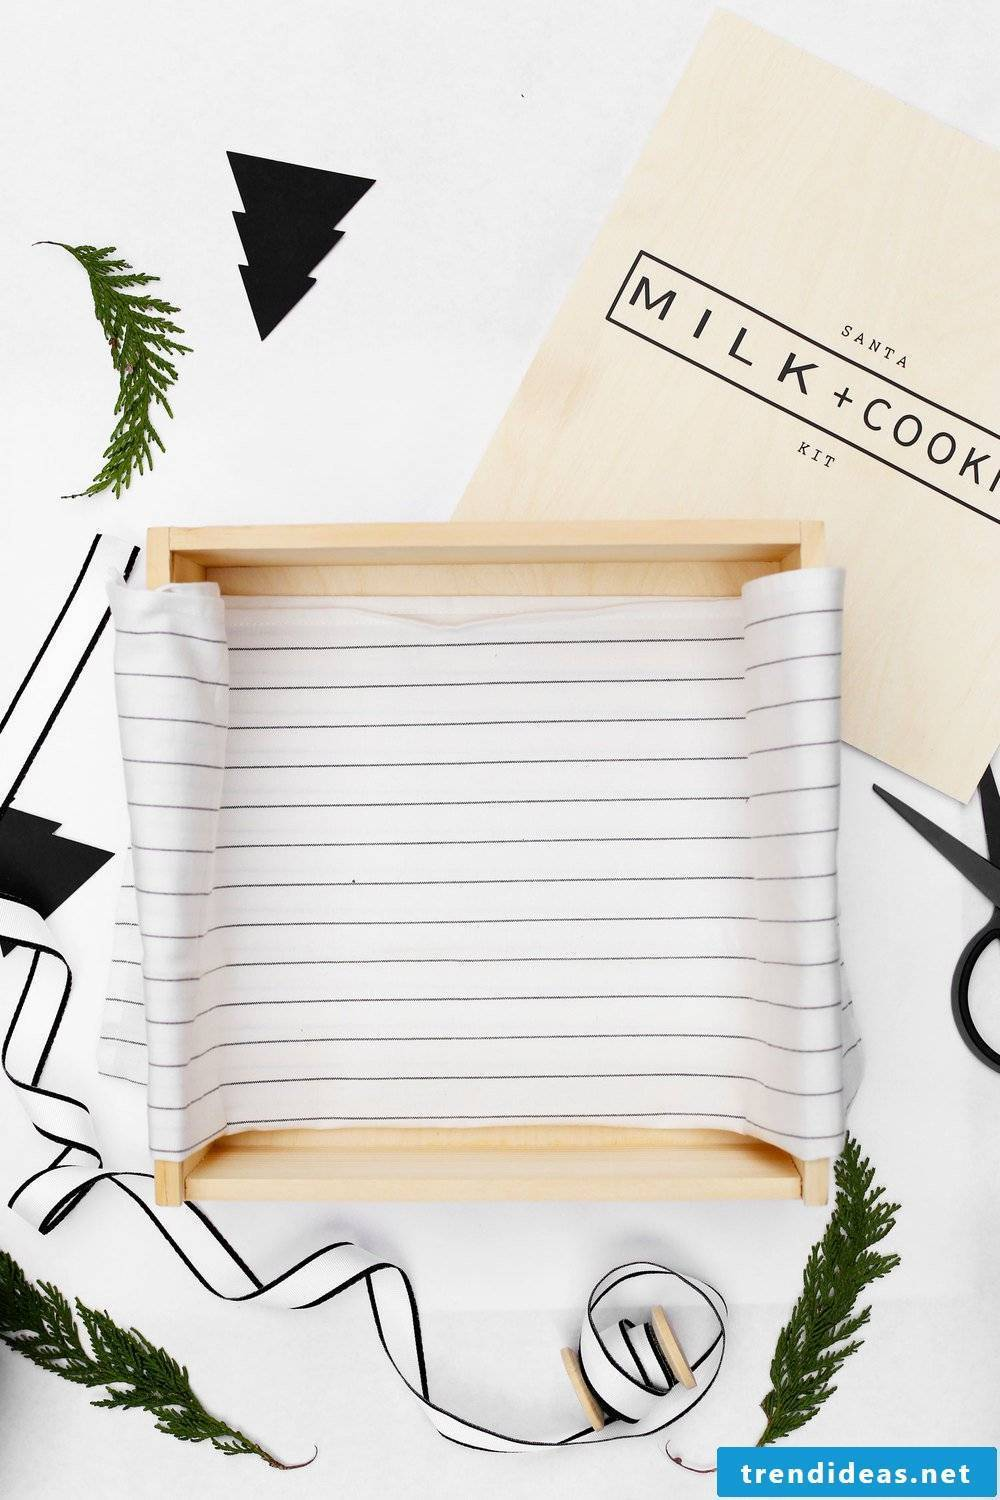 Cool crafting ideas for the perfect gifts to imitate